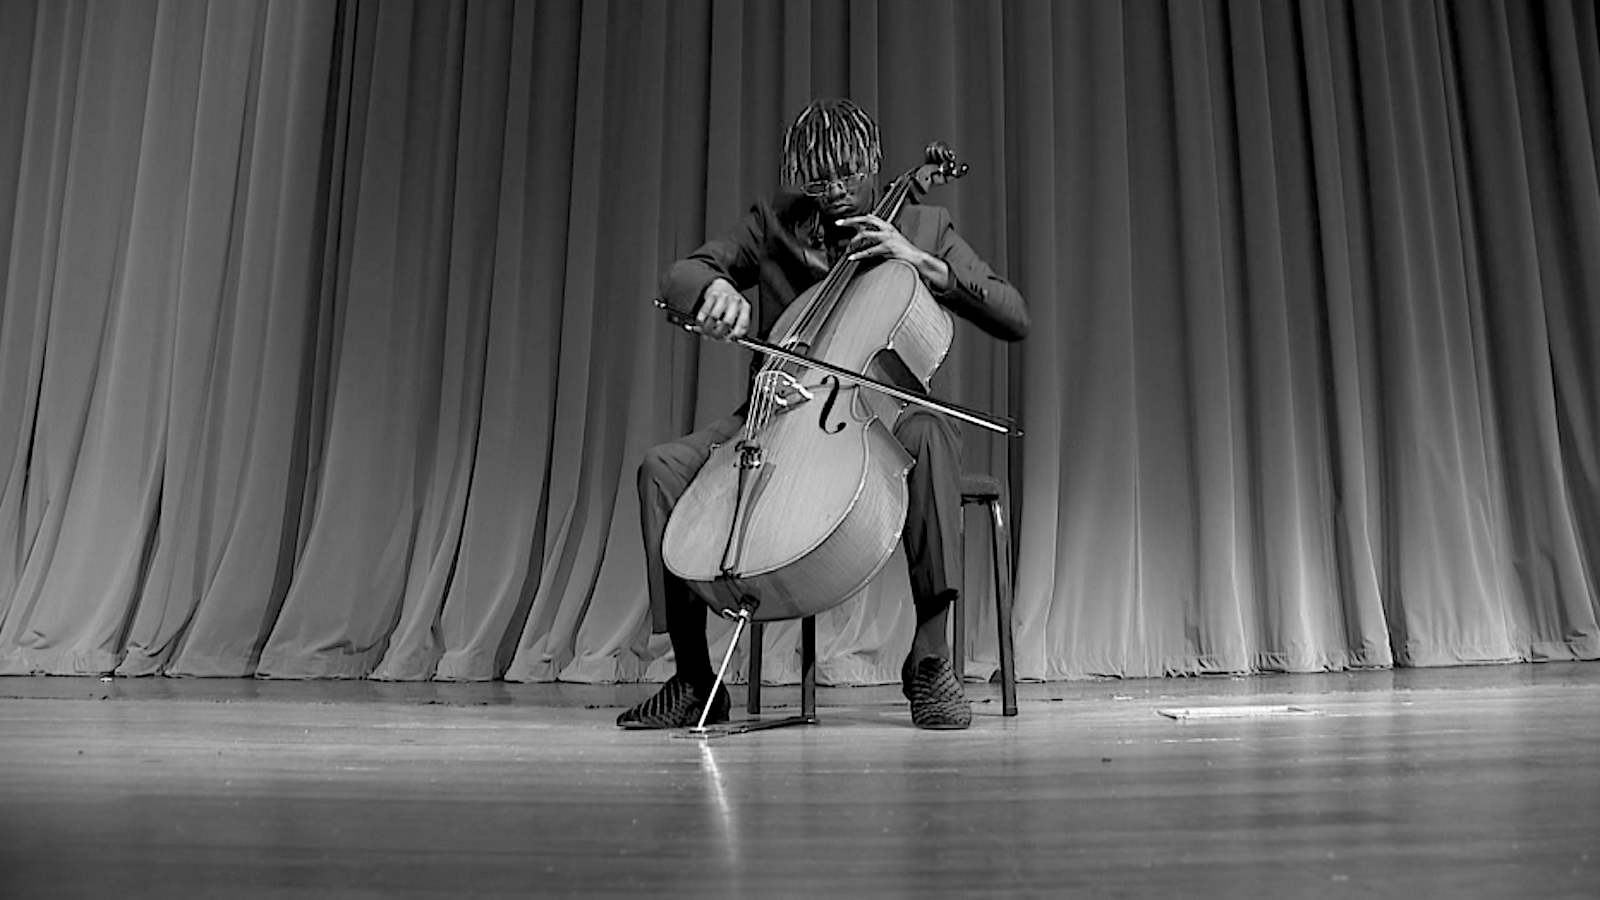 Khalil Payne_Cellist, KOLUMN Magazine, KOLUMN, KINDR'D Magazine, KINDR'D, Willoughby Avenue, Wriit,